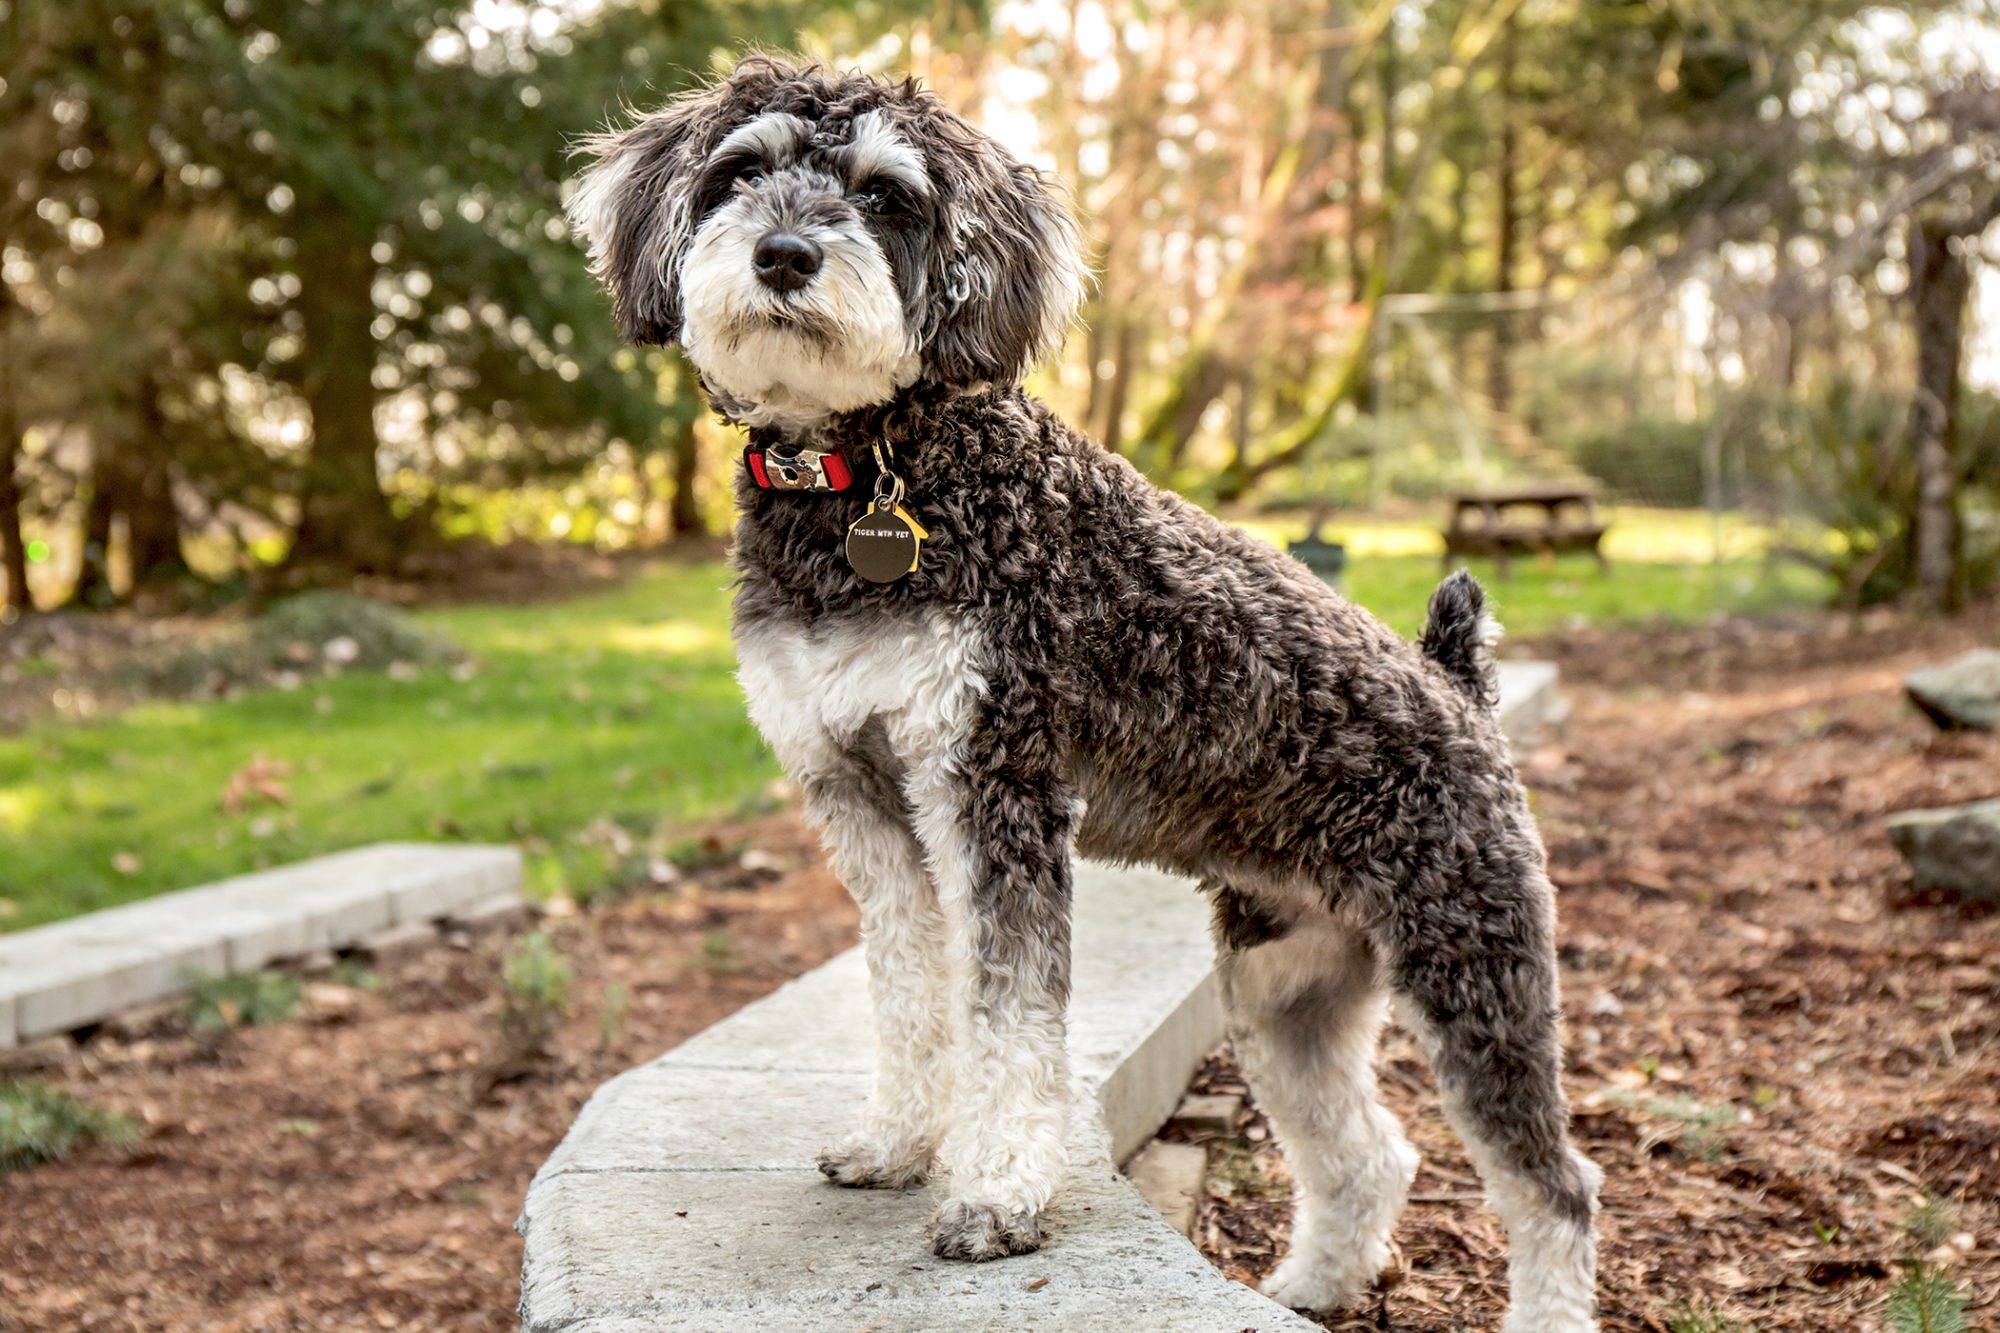 Black and white schnoodle stands with front paws on concrete bench in park